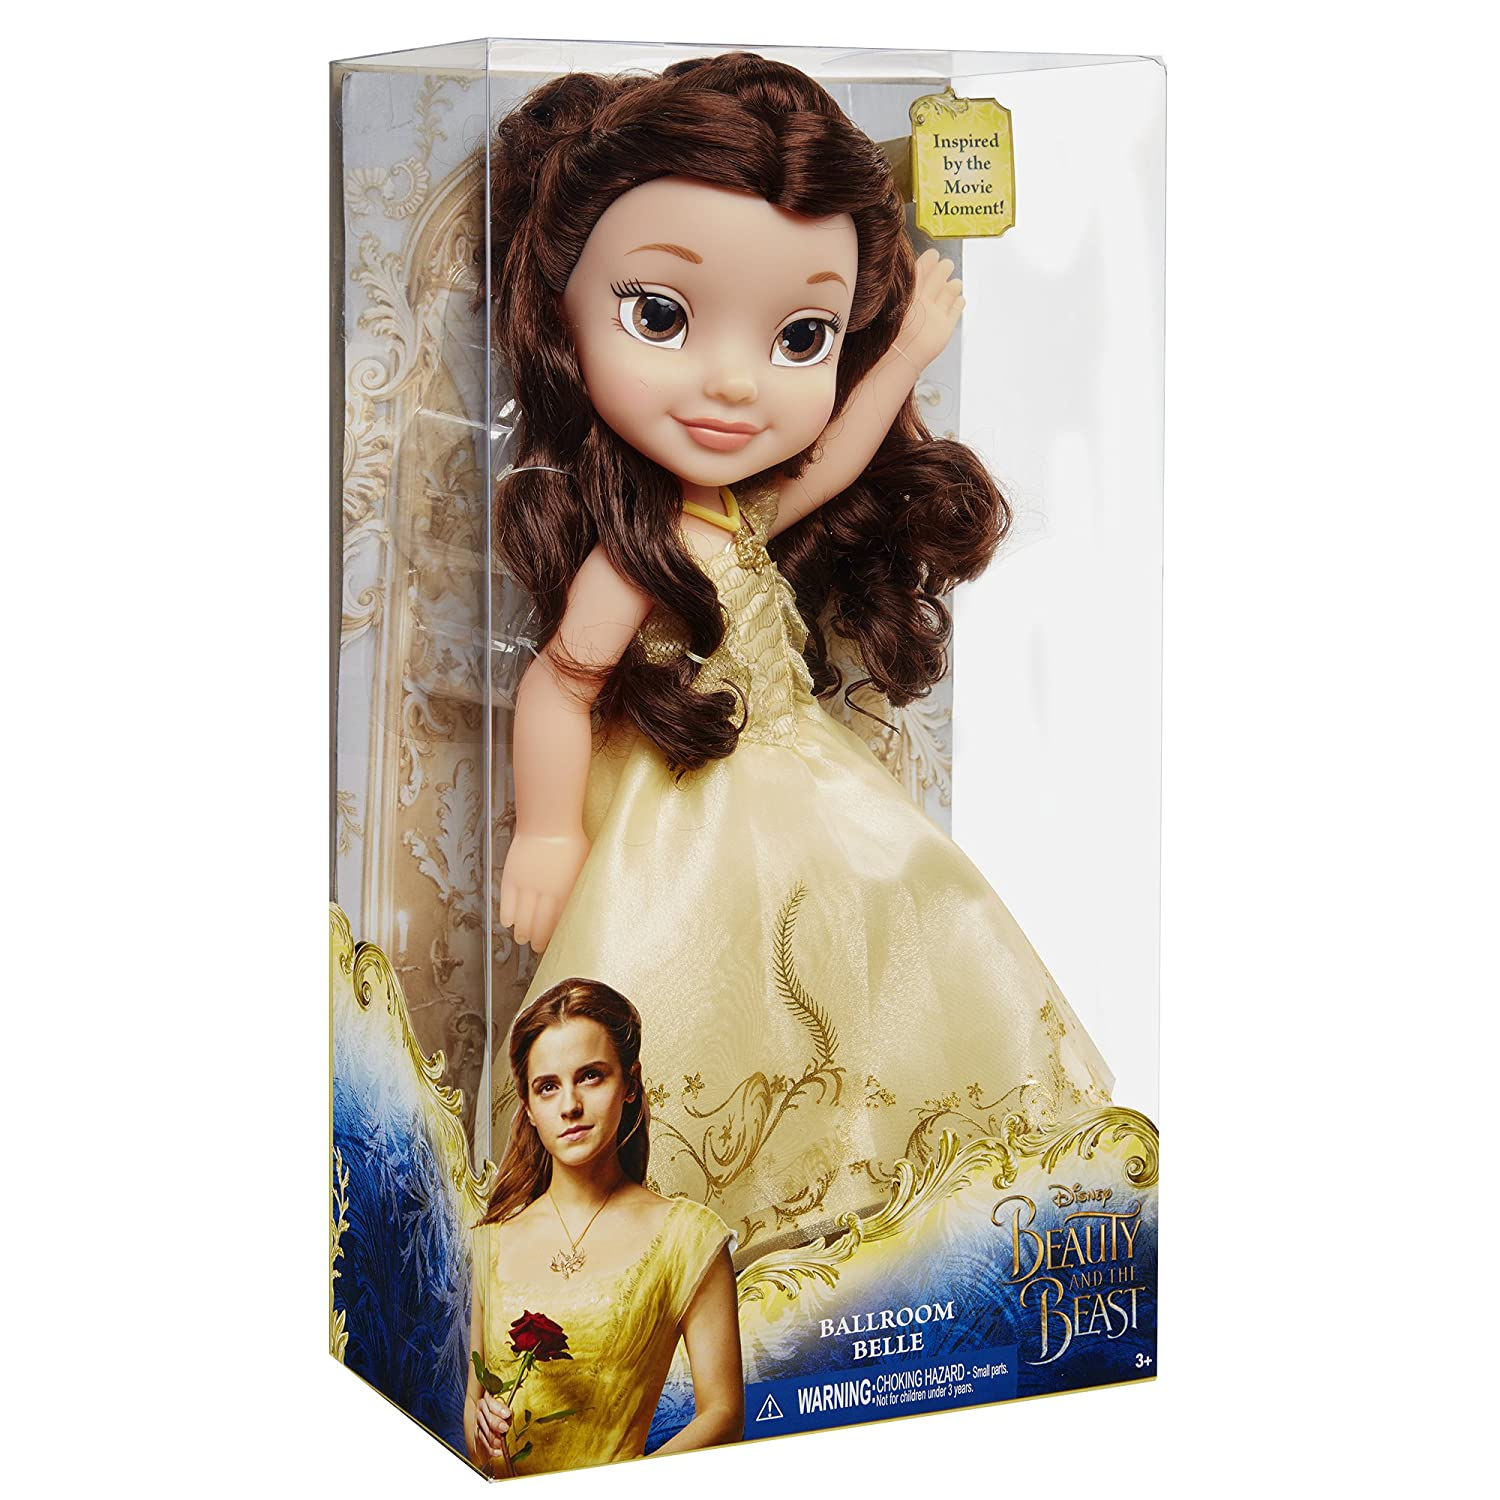 Beauty And The Beast Ballroom Belle Doll Amazoncouk Toys Games